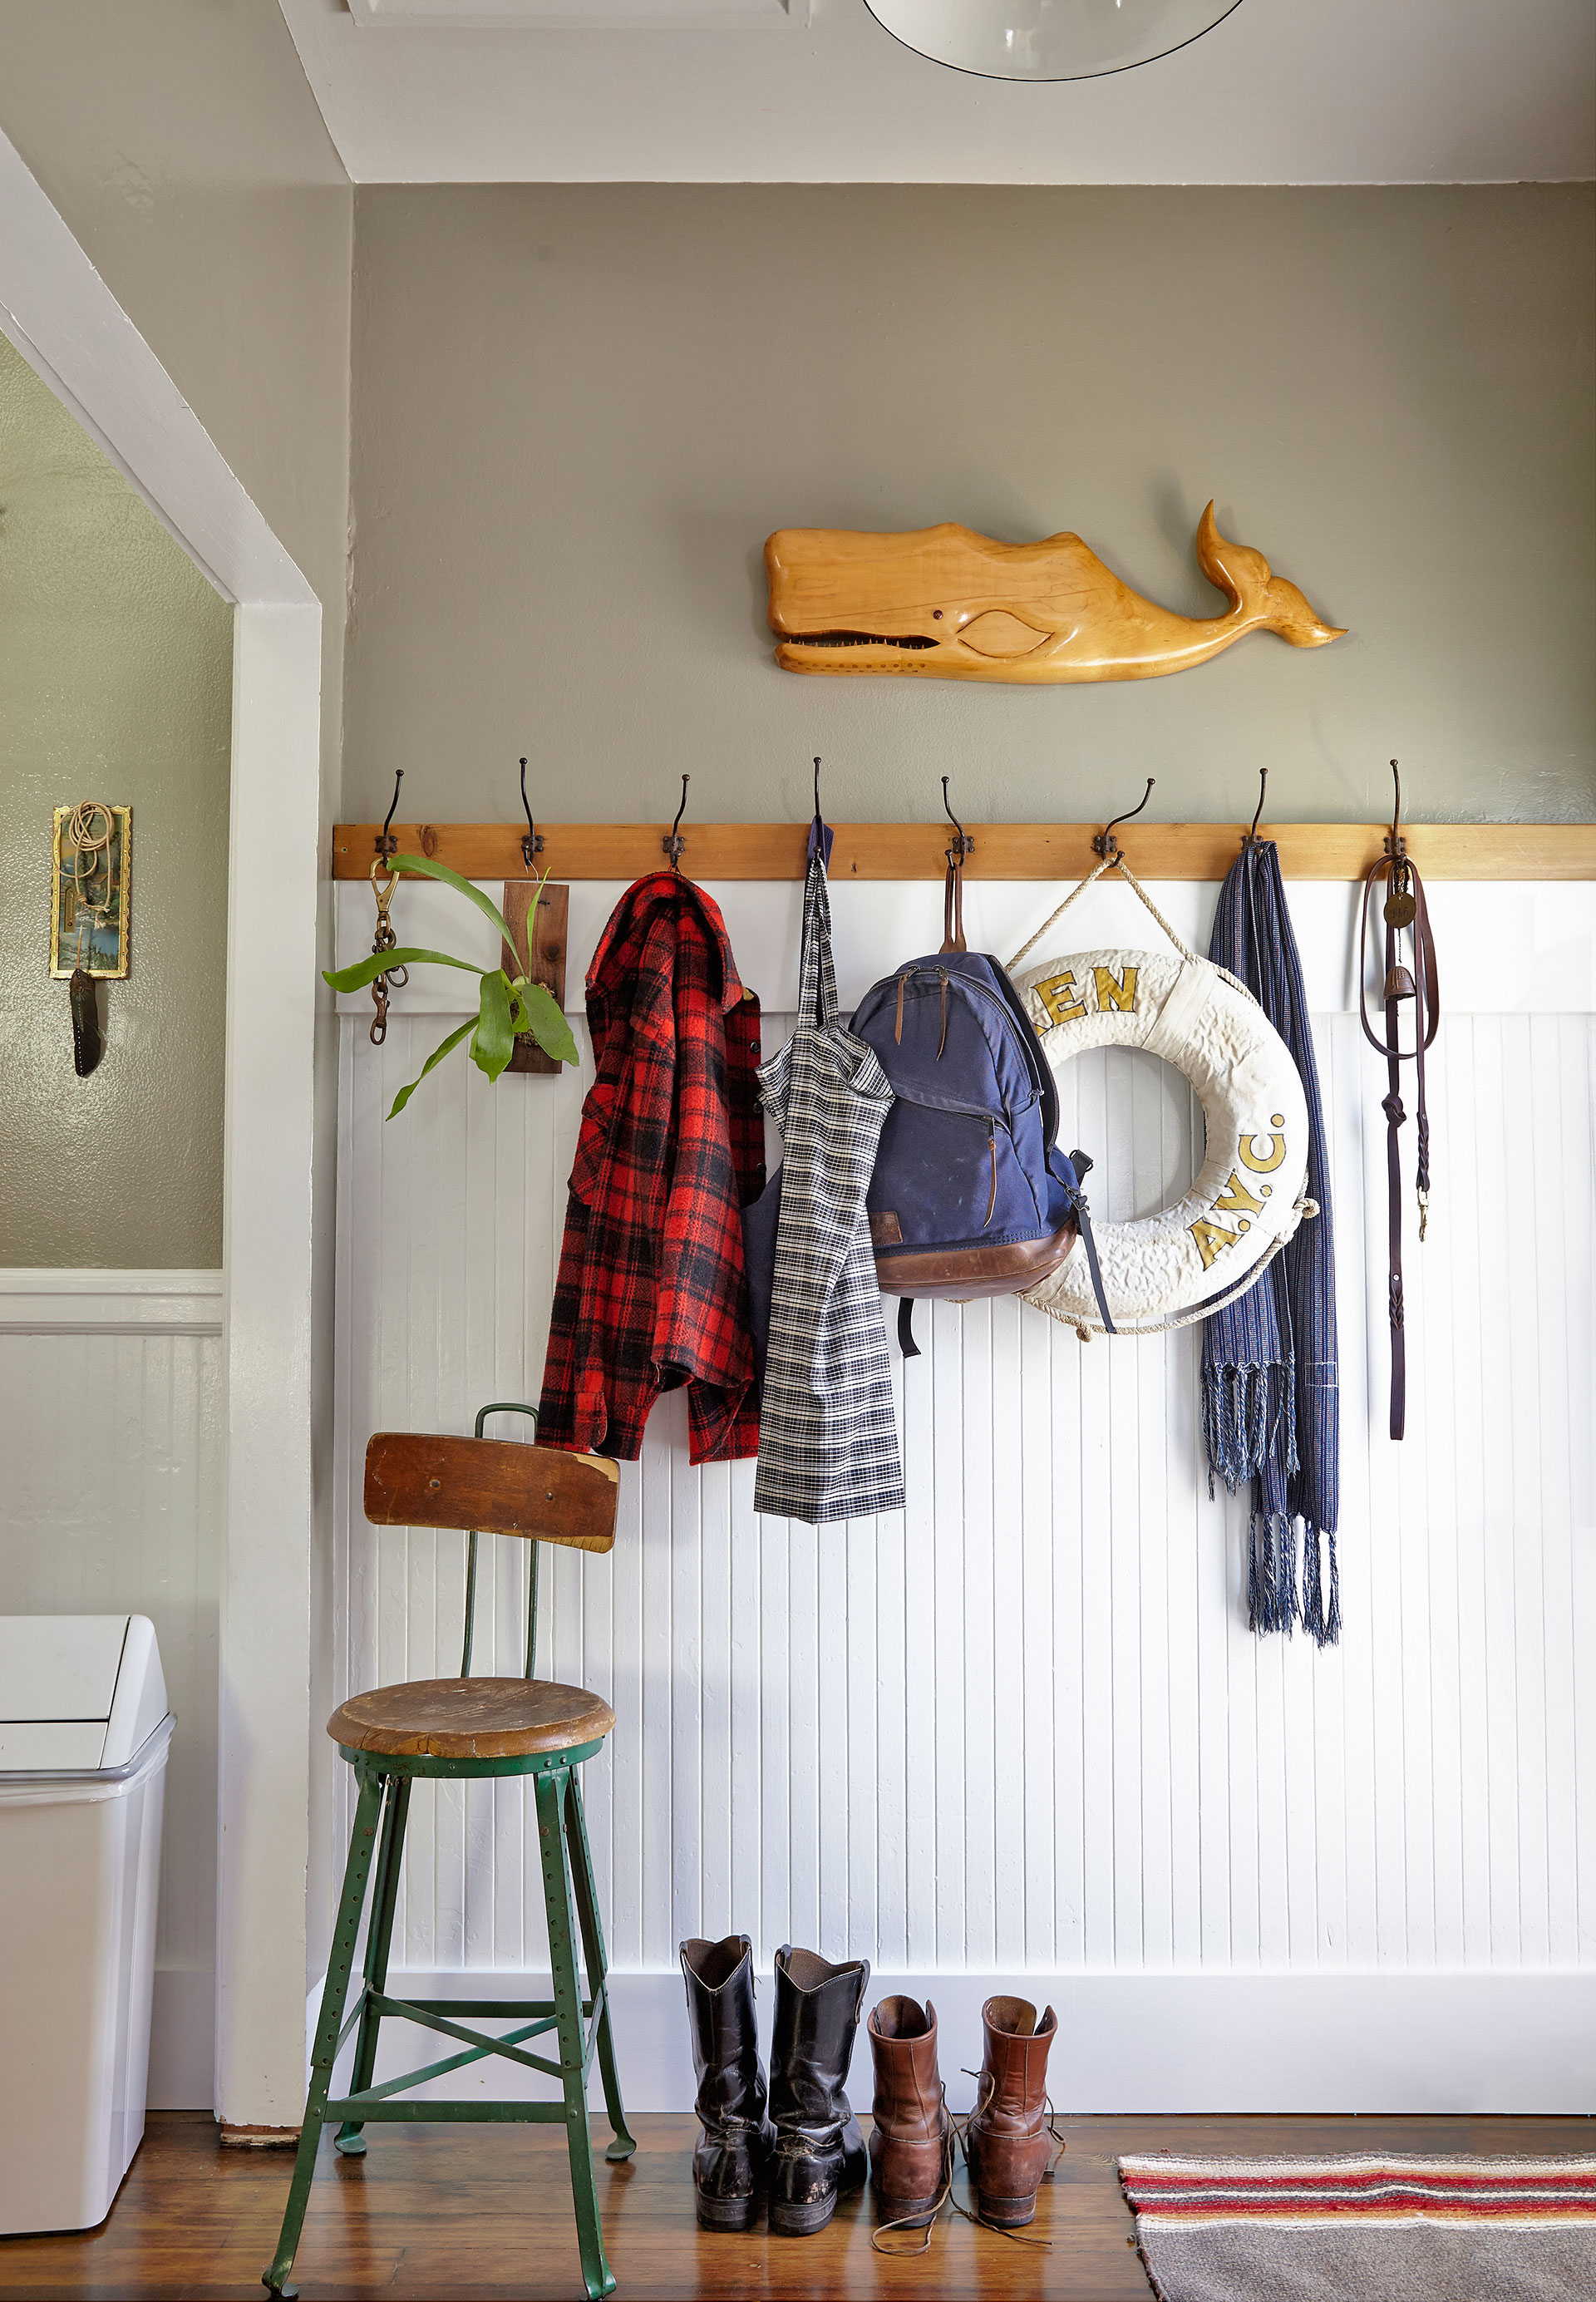 Design Mudroom Ideas mud room ideas decorating a or laundry room